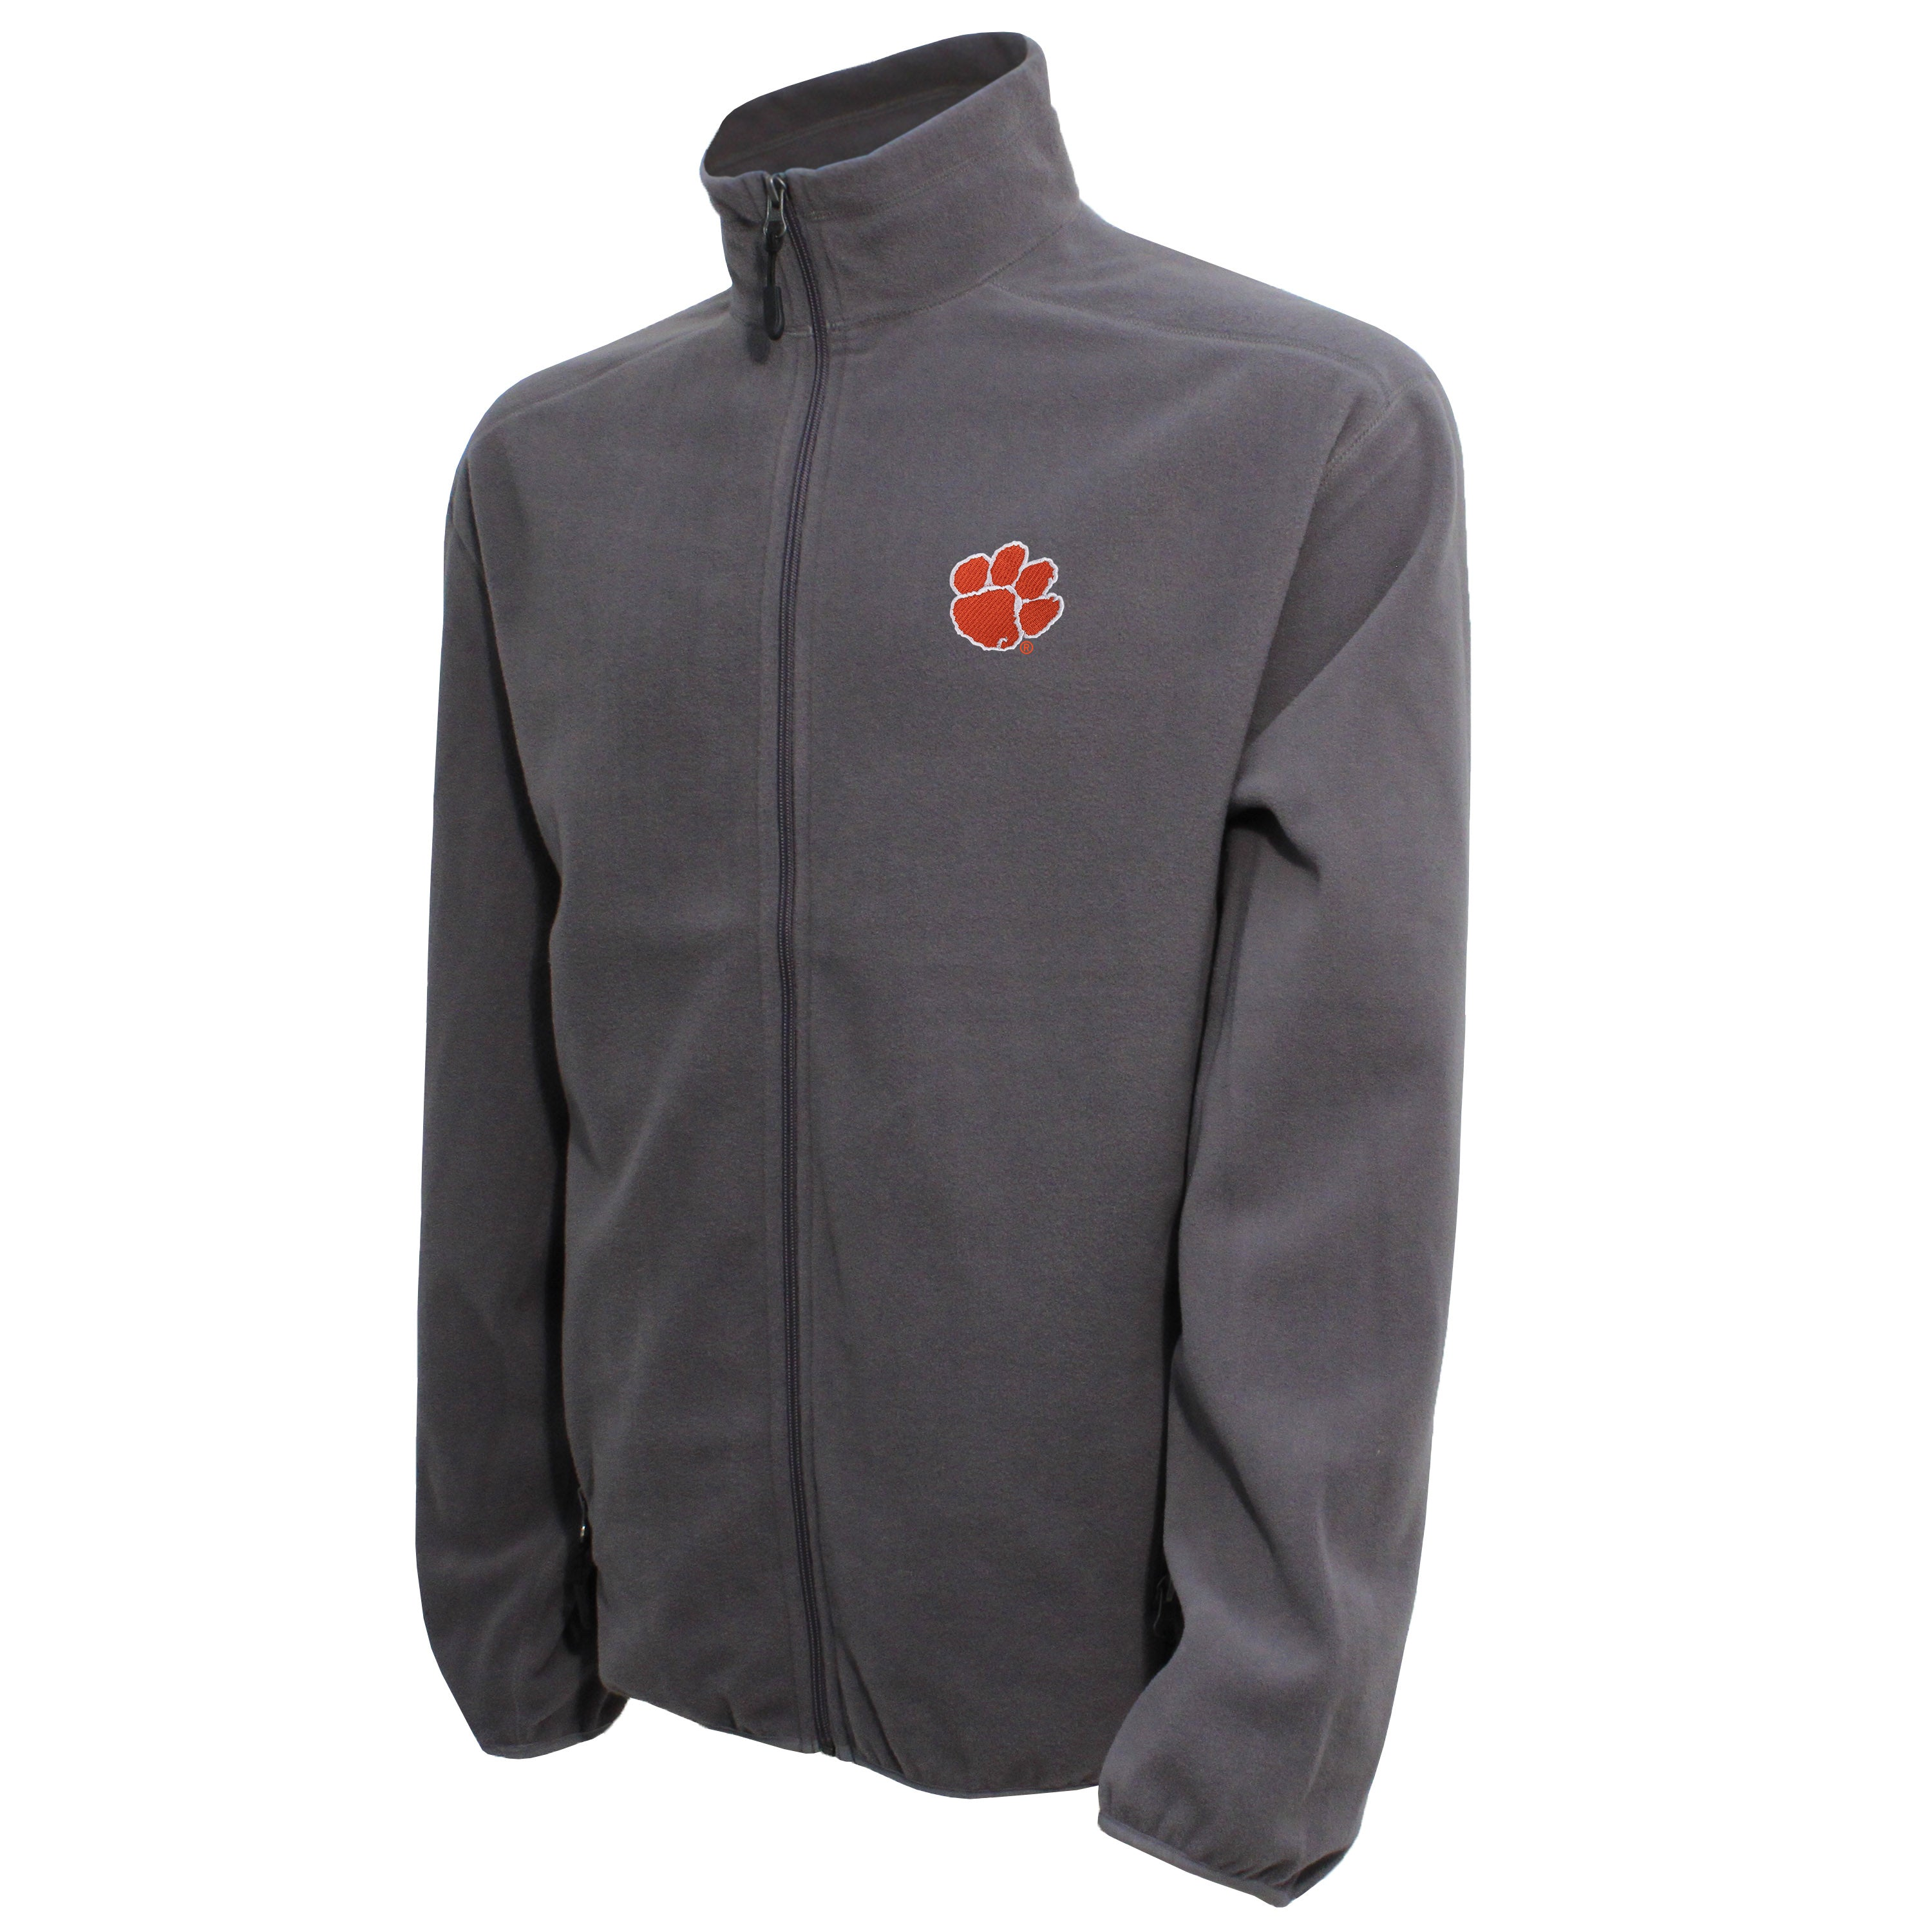 Vesi Clemson Men's Graphite Full Zip Jacket